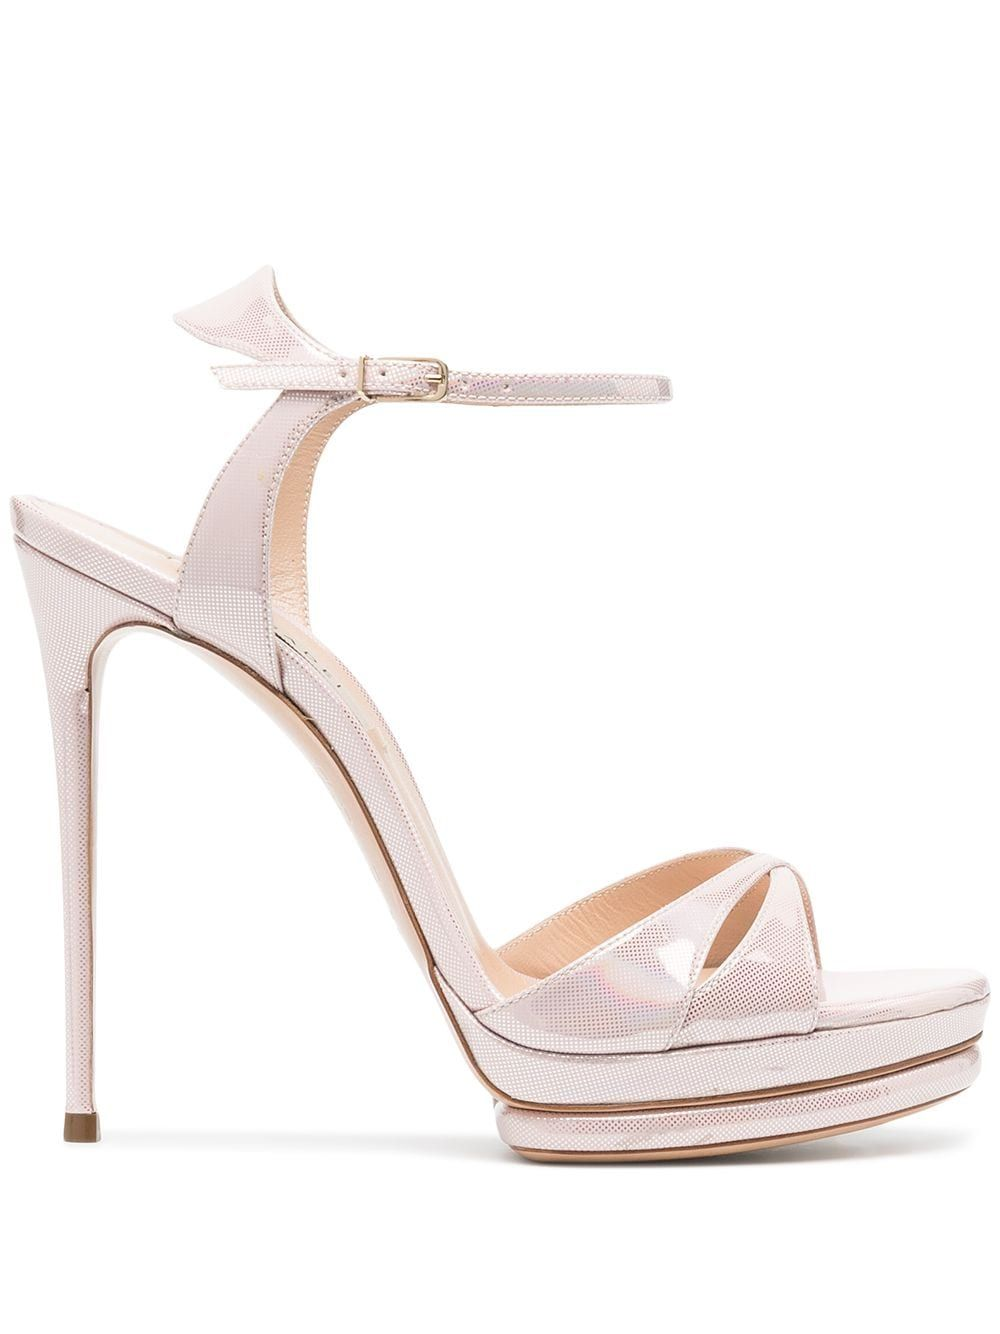 Casadei Leathers CASADEI WOMEN'S 1L763S1201INCAL3301 PINK LEATHER SANDALS